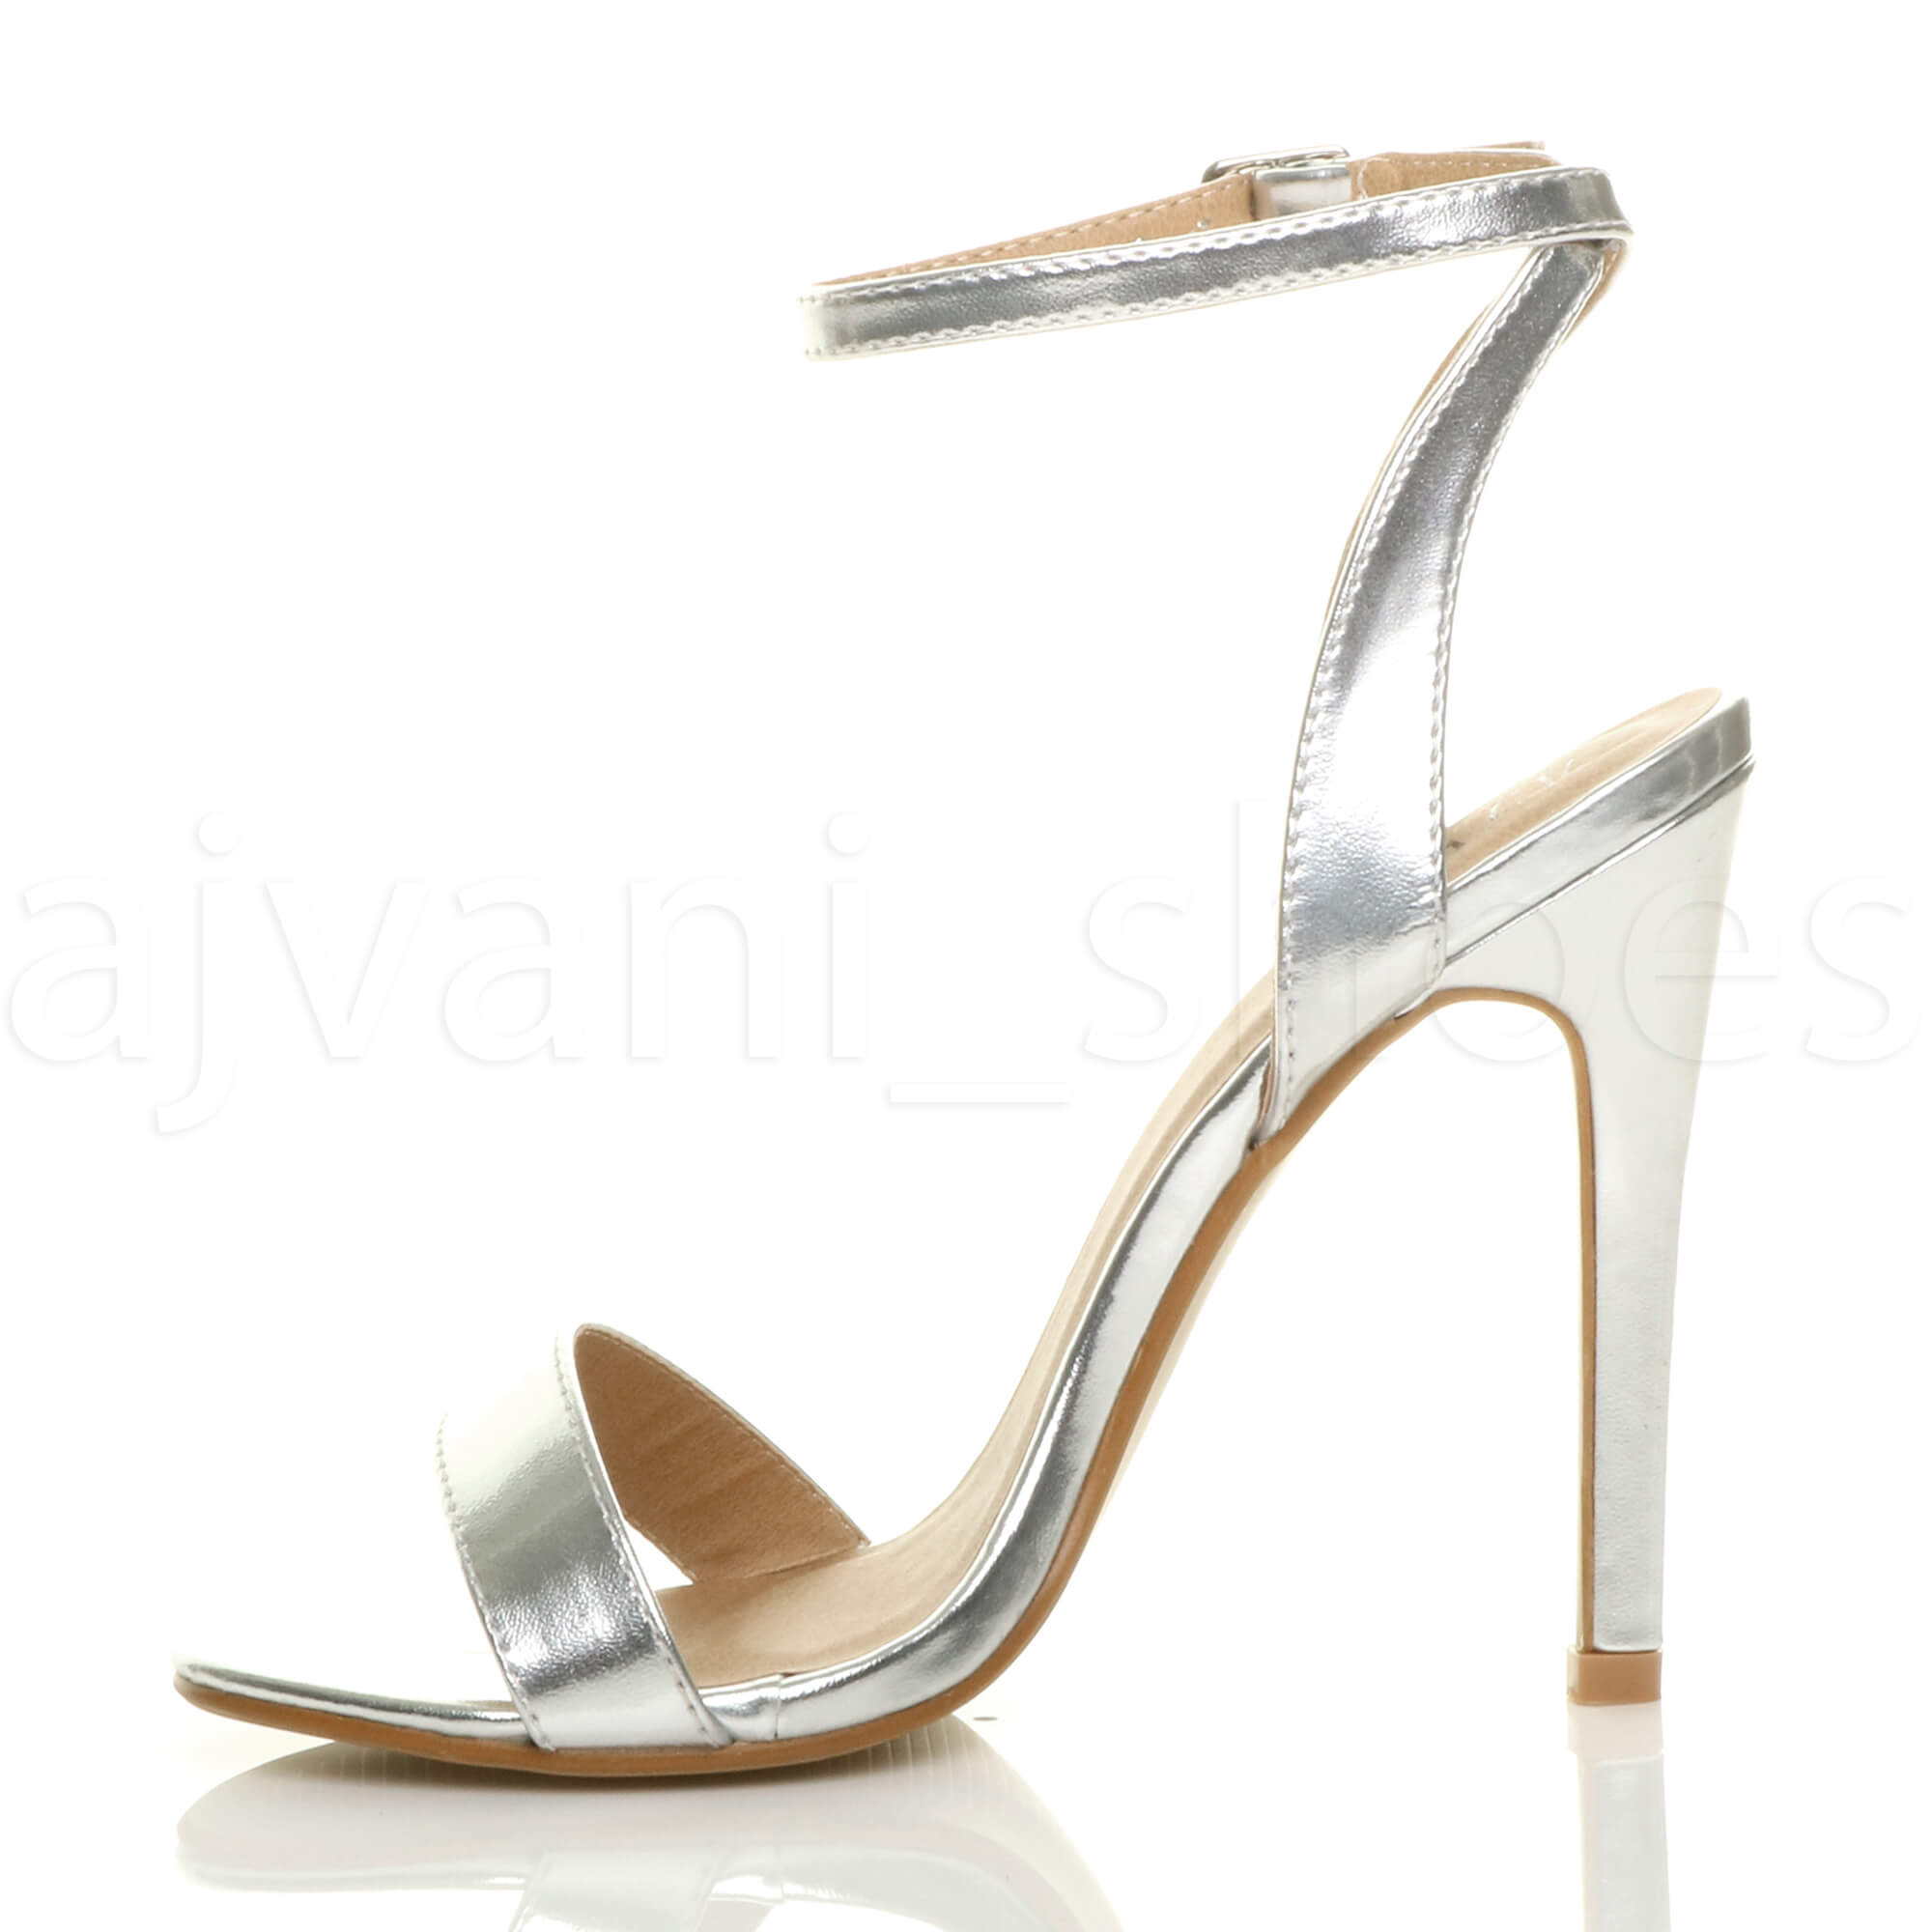 WOMENS-LADIES-HIGH-HEEL-ANKLE-STRAP-BARELY-THERE-STRAPPY-SANDALS-SHOES-SIZE thumbnail 109